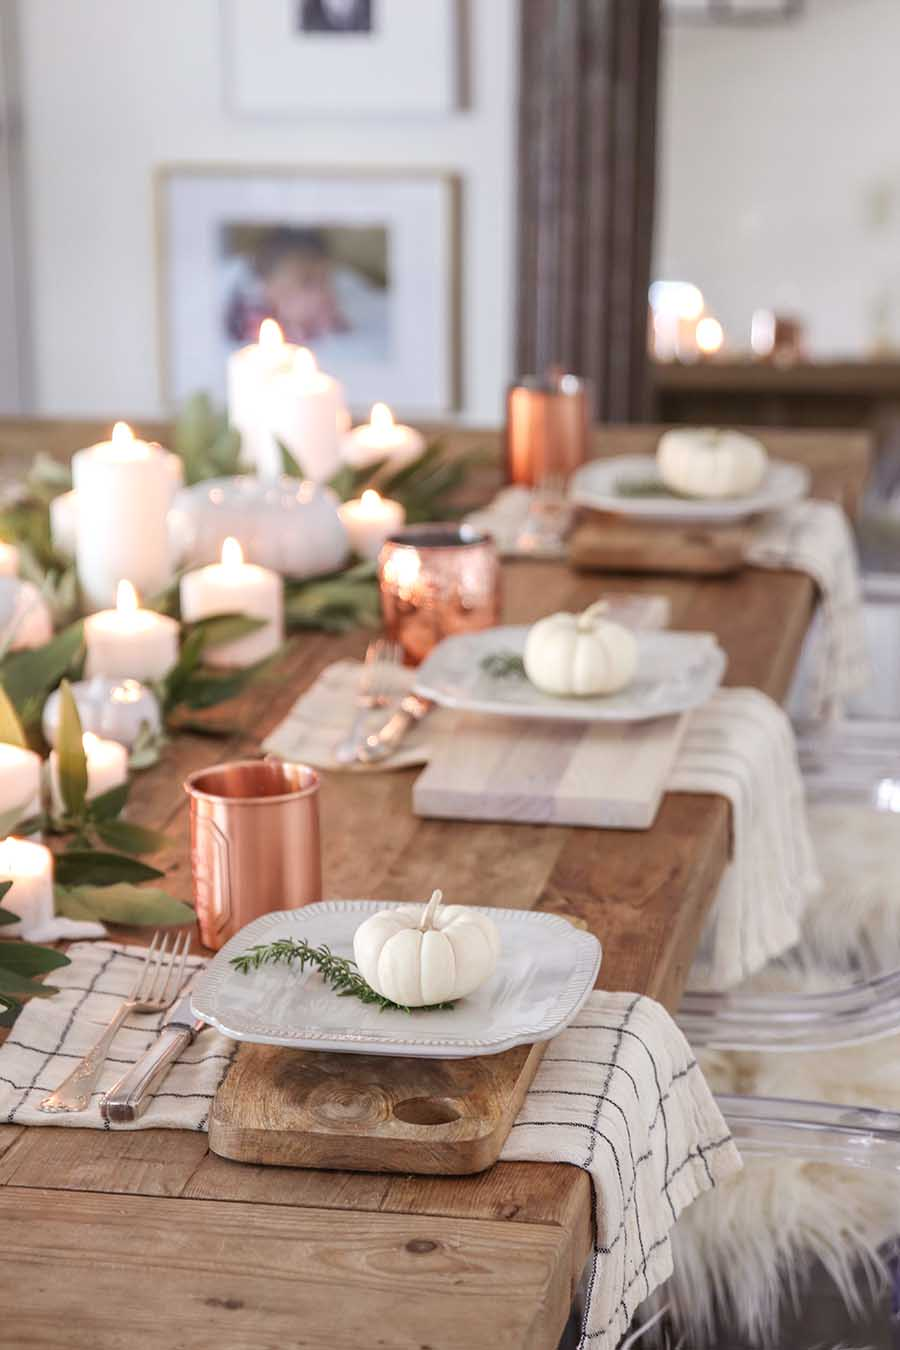 Fall tablescape with white pumpkins